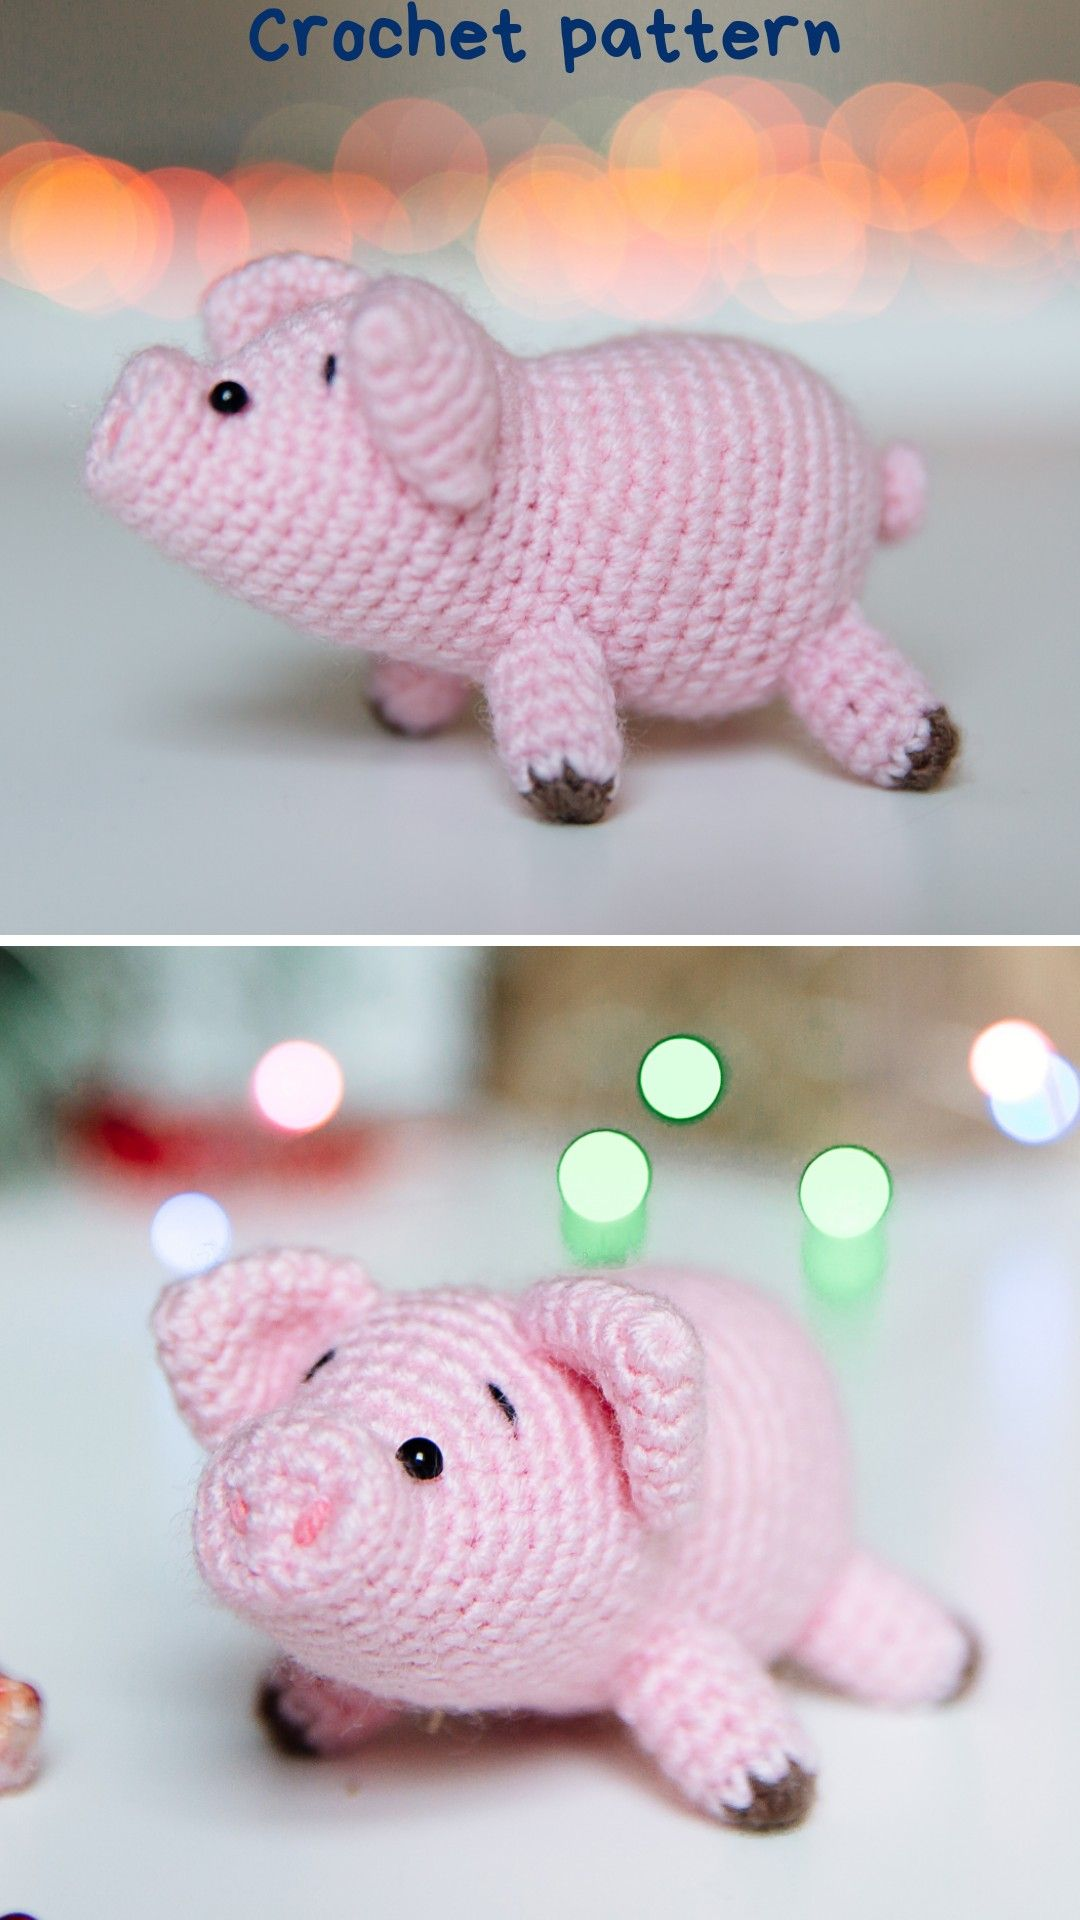 Crochet Piggy Stuffed Toy Hand-knitted Pig Amigurumi Pig Toy Wool ... | 1920x1080